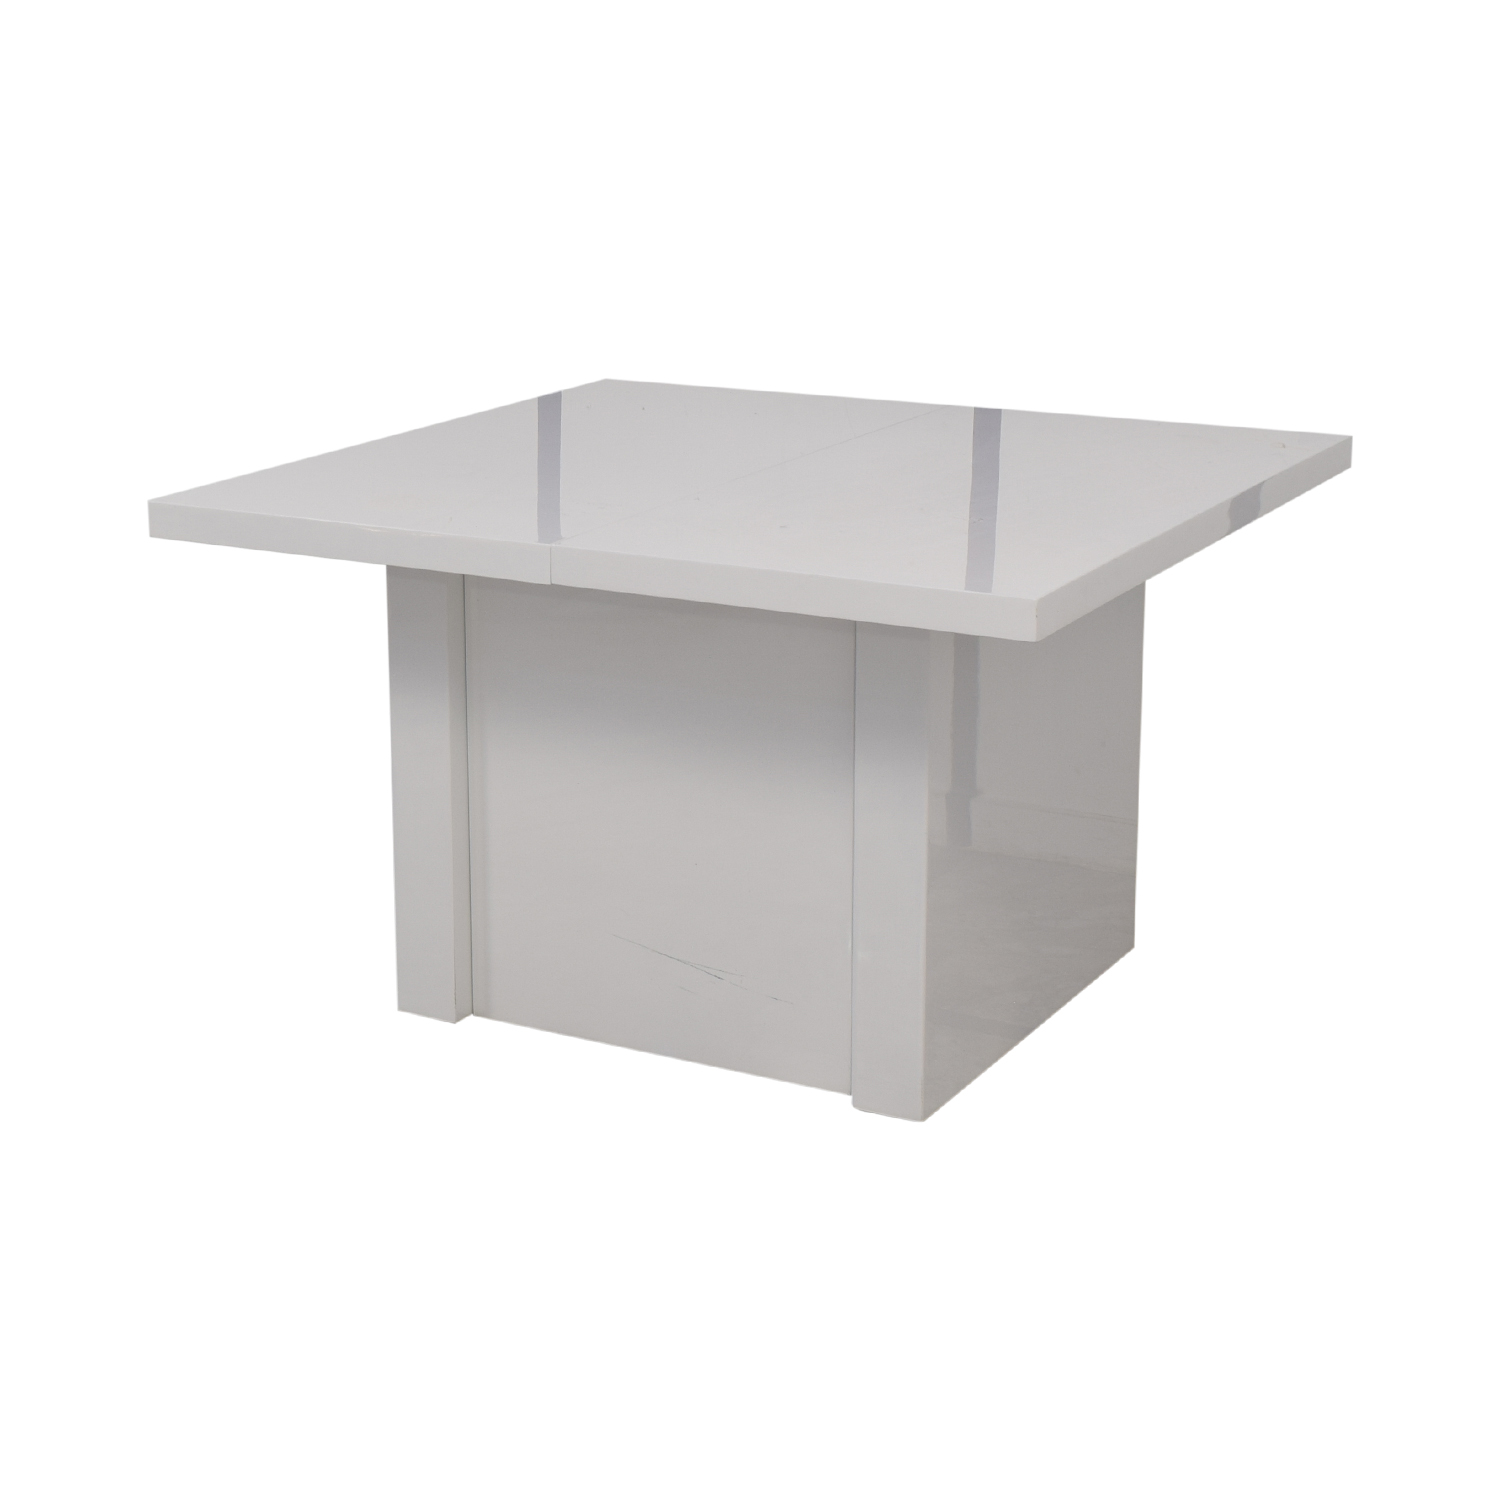 Orren Ellis Orren Ellis Stotfold White Extendable Table nj